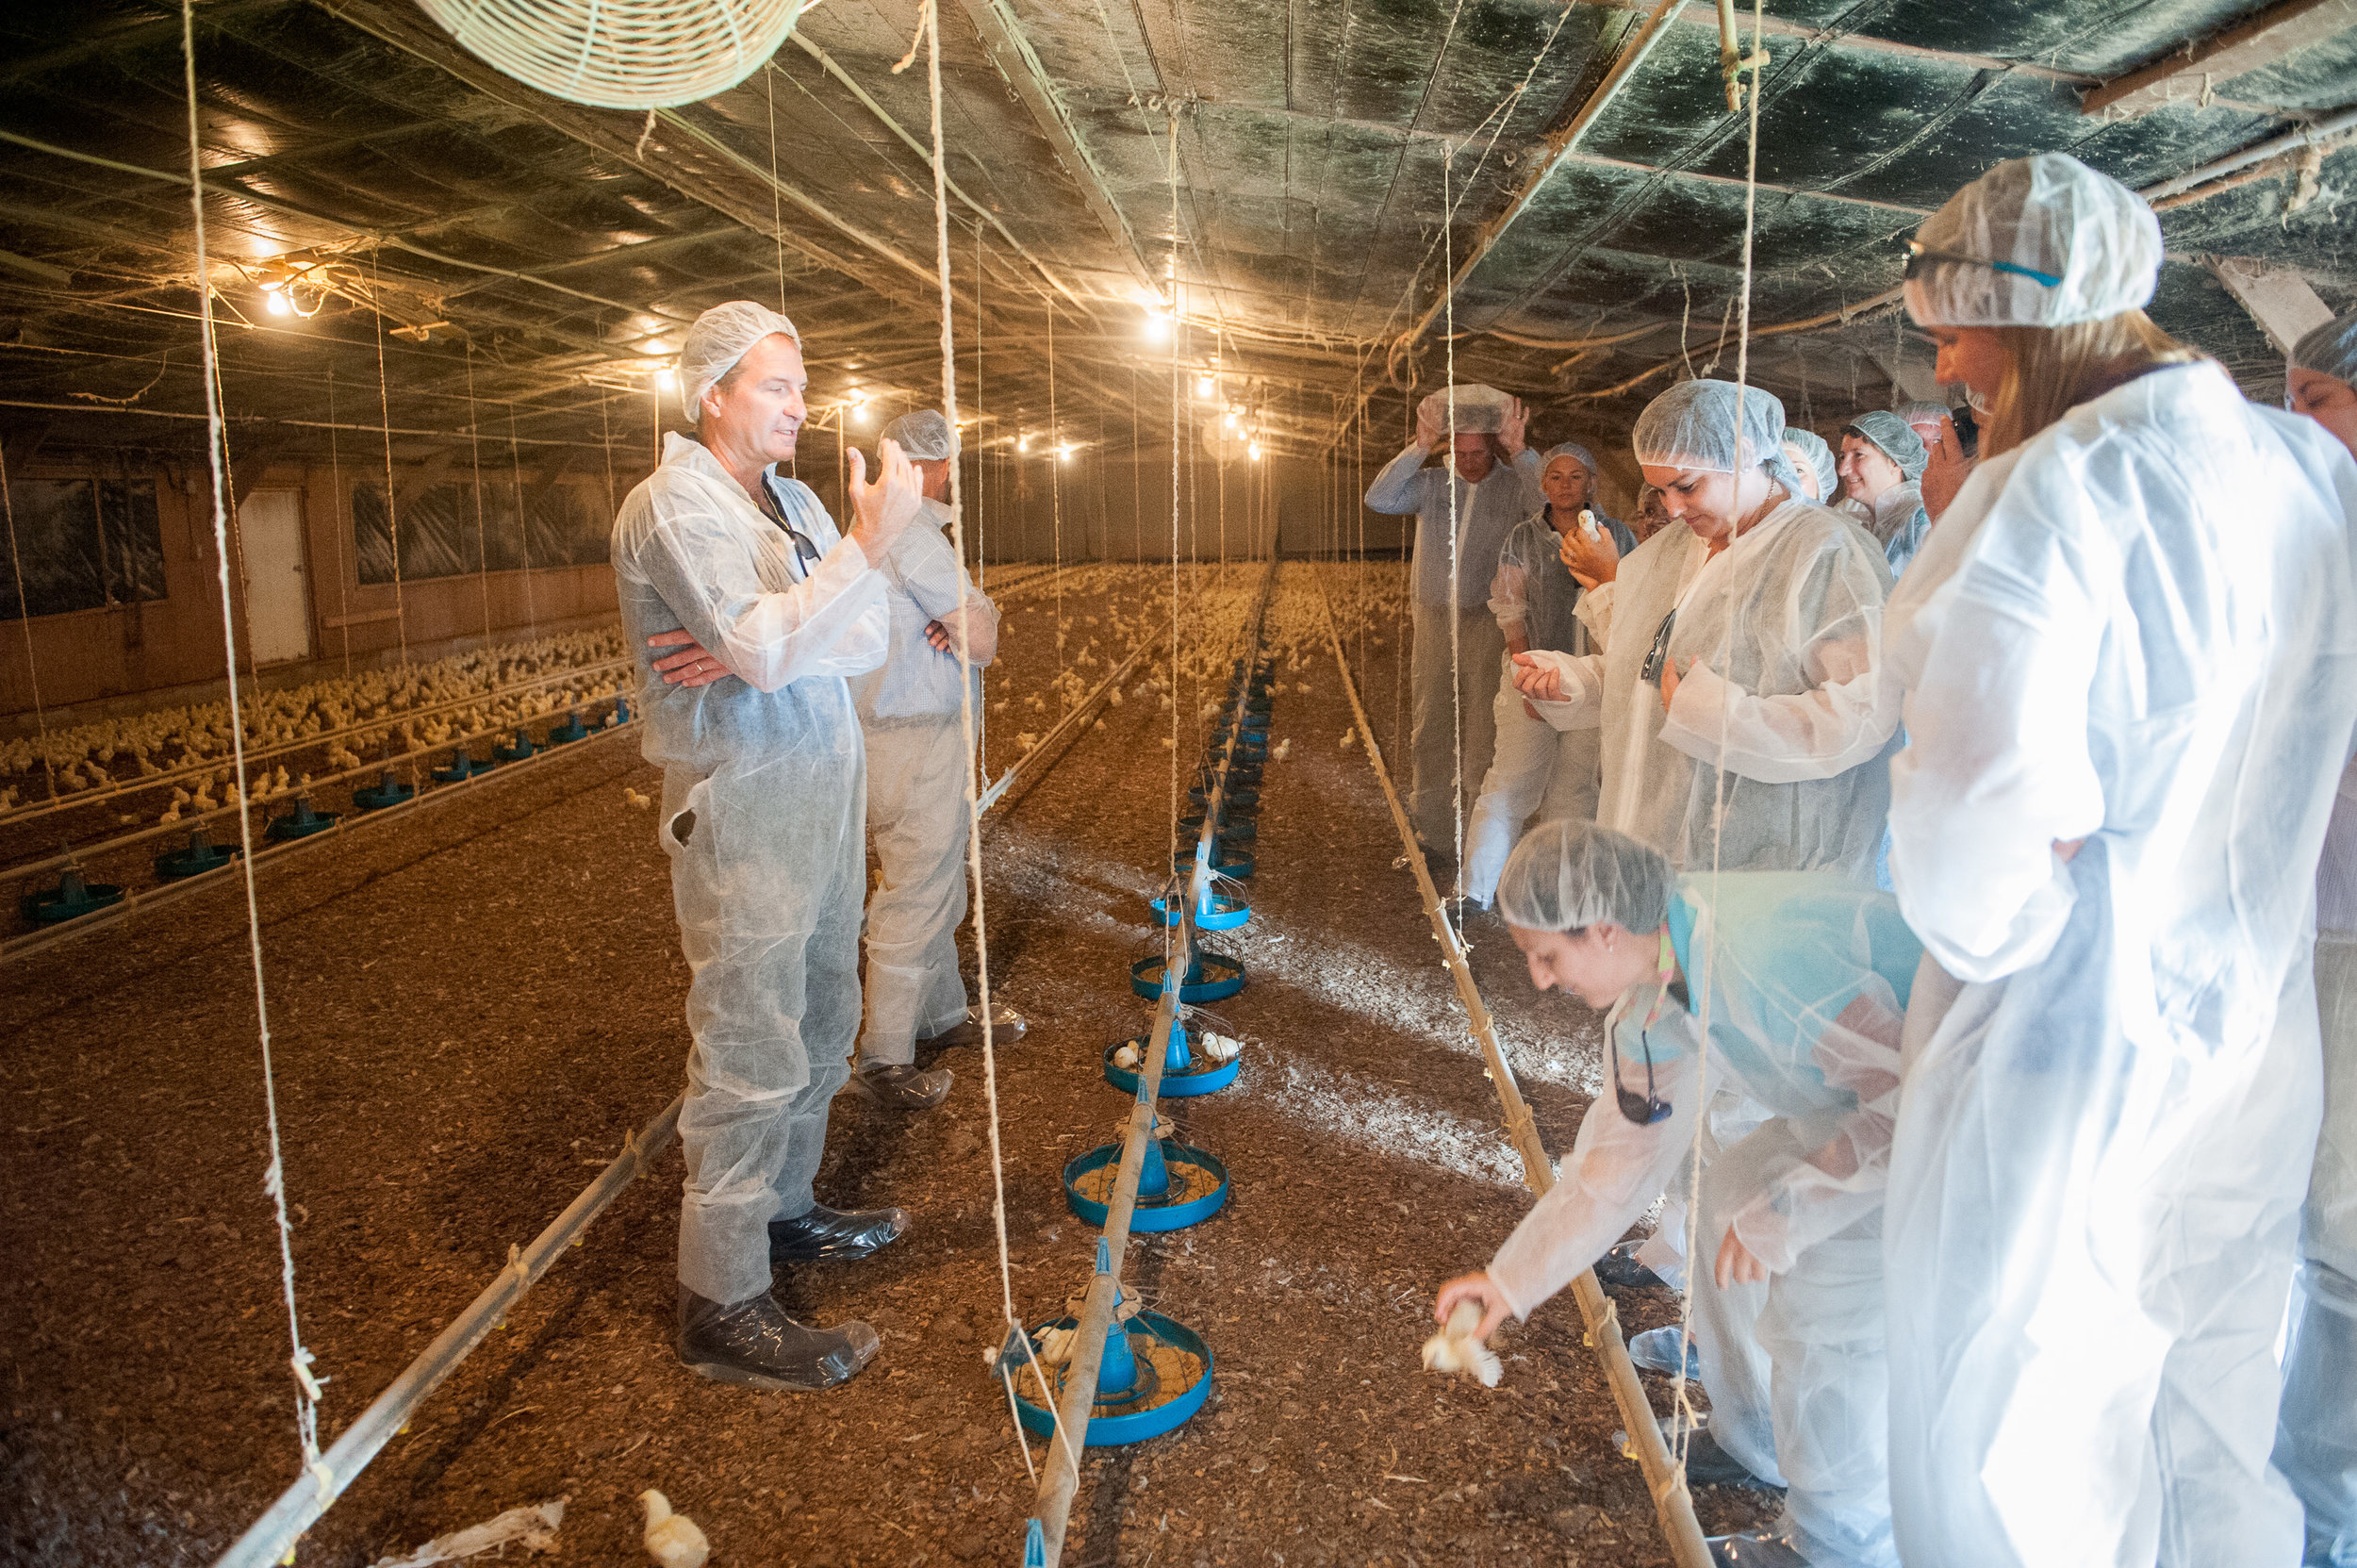 Individuals in biosecurity clothing in a poultry house in Maryland.  Image is by Edwin Remsberg